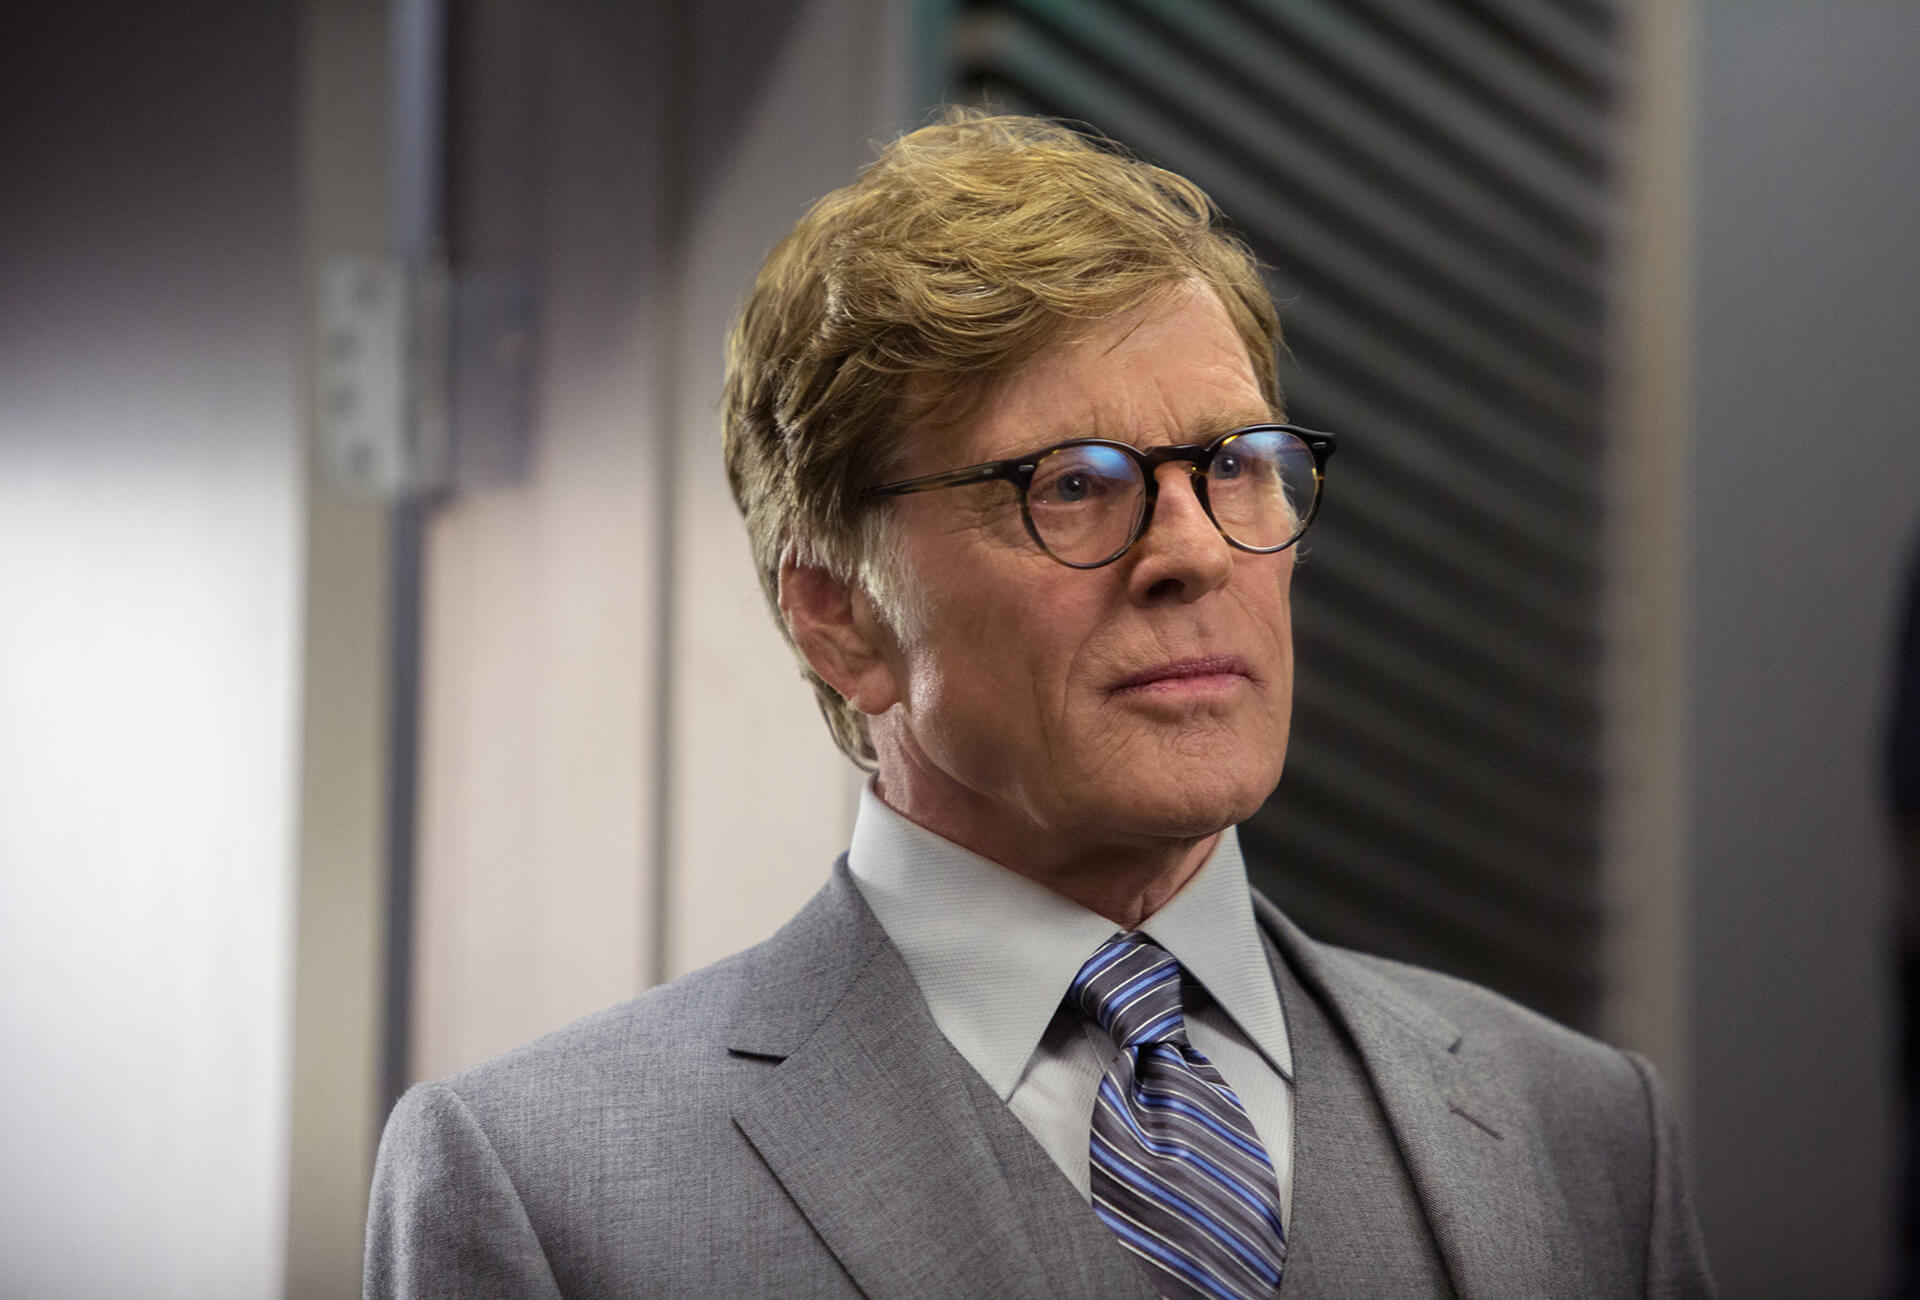 Robert Redford A Natural Star Fhh Journal